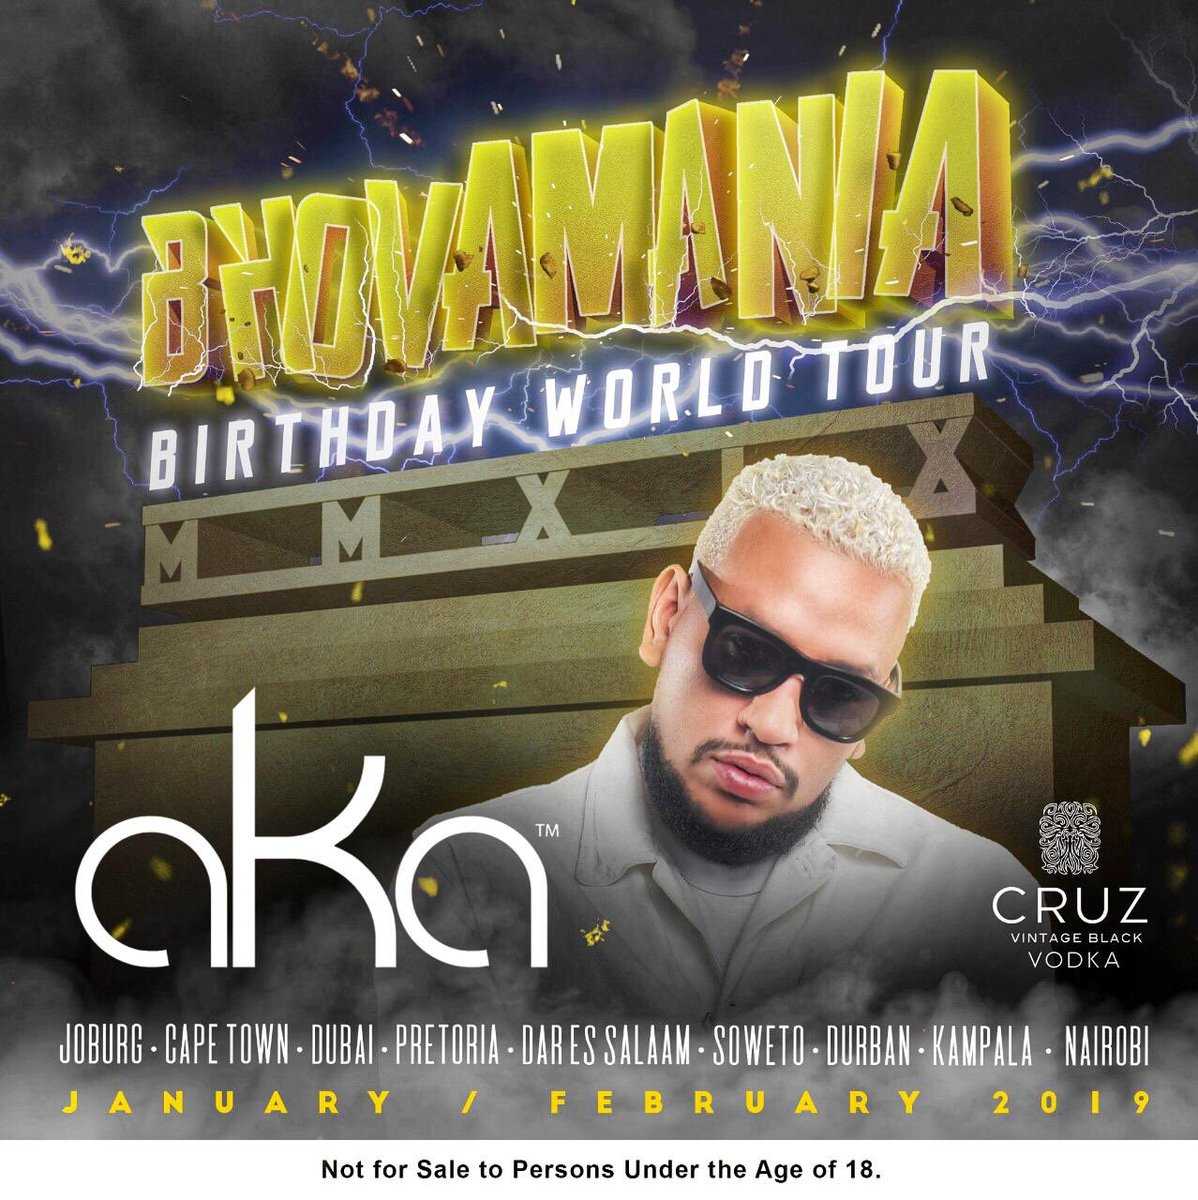 """DI MOLTI TSALENTED #1 🥇 SUPA MEGA STAR PRESENTS: """"THE BHOVAMANIA ⚡️🐺 BIRTHDAY WORLD 🌍 TOUR """" ✈️💸 Venues, Dates and Special Guests to be announced soon ... #BBWT #31 #MMXIX ⛽️🔥 @Cruzvodka 🇿🇦🇦🇪🇺🇬🇰🇪🇹🇿"""